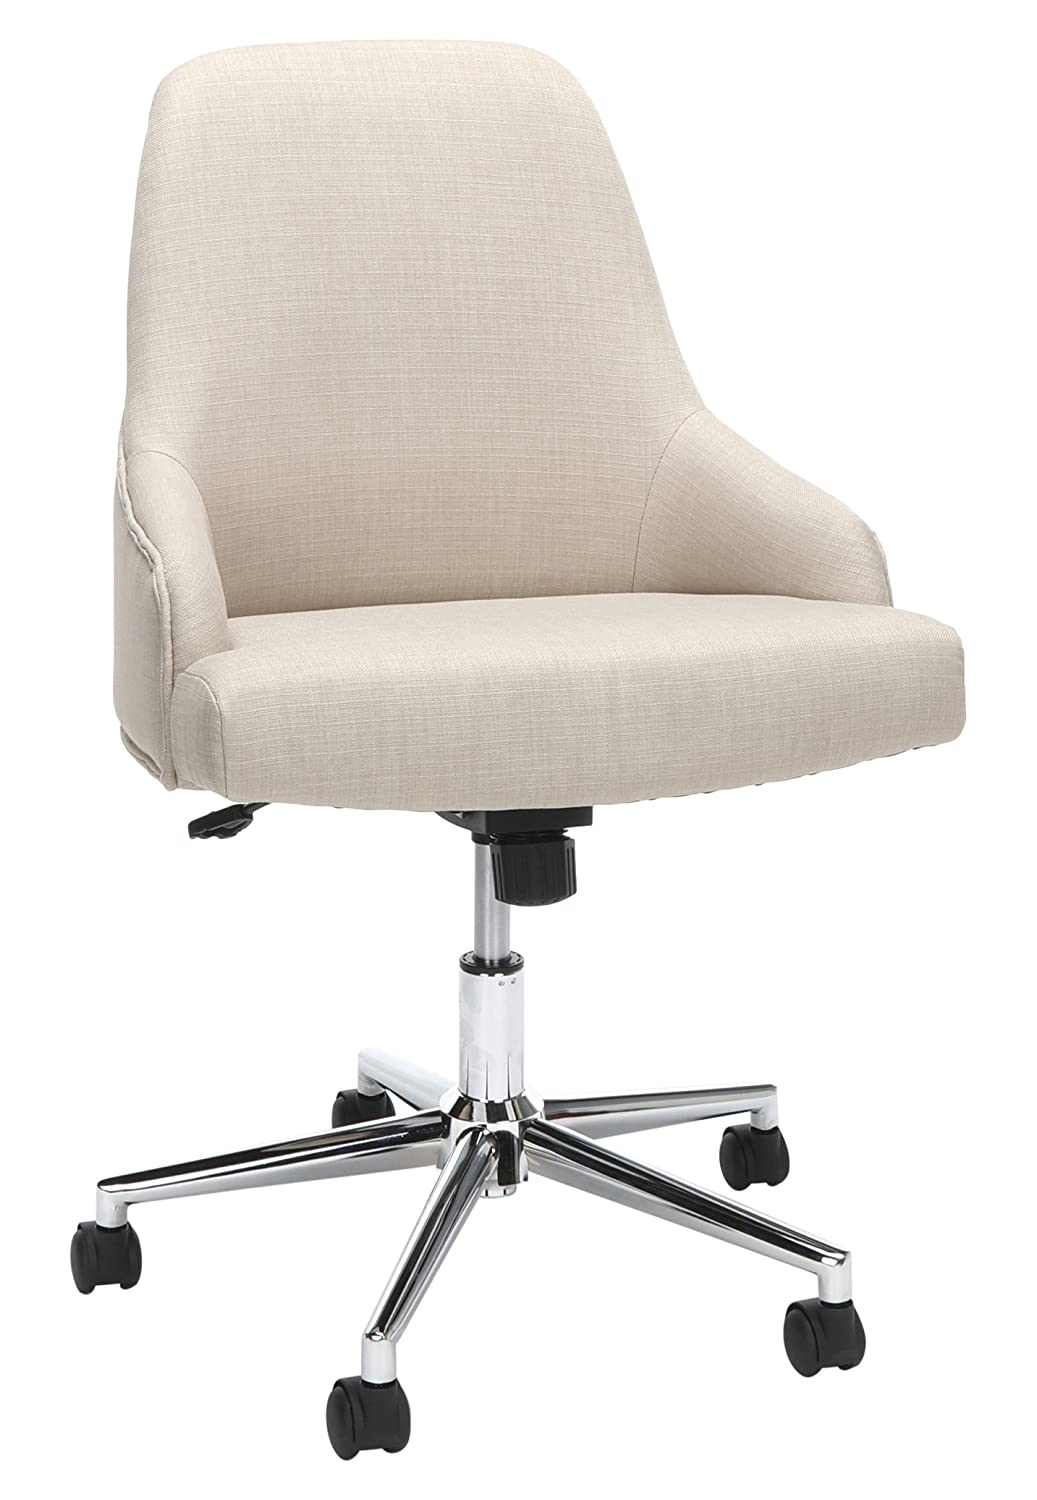 Essentials Upholstered Home Desk Chair – Ergonomic Office Chair for Conference Room or Office, Tan